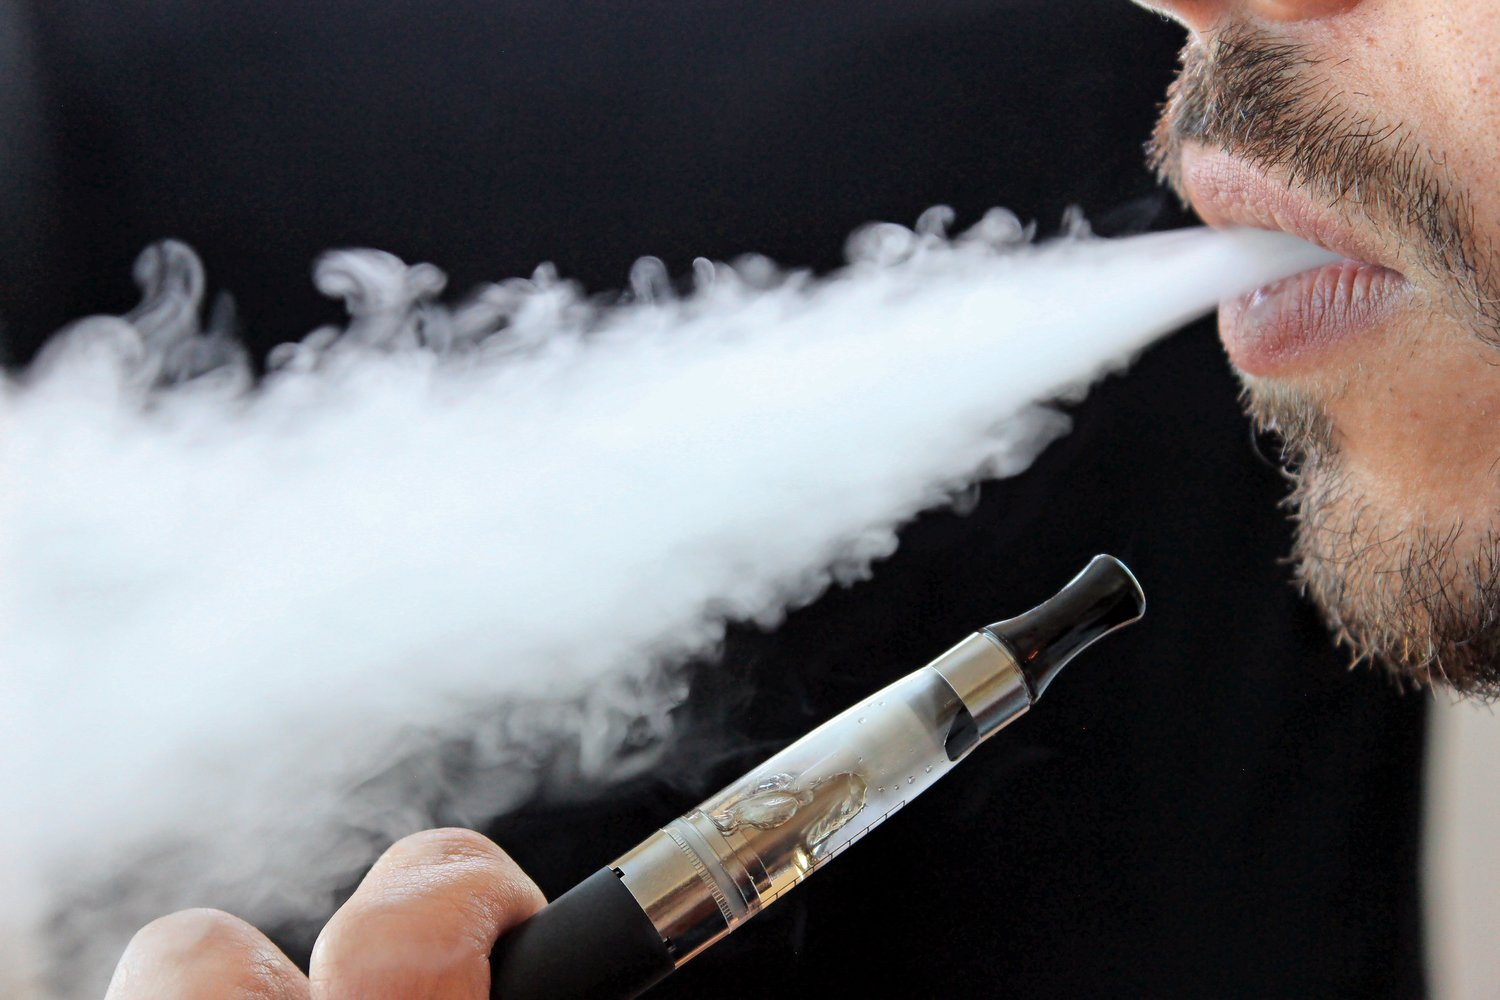 The Nassau County Legislature unanimously approved legislation to restrict the sale of most flavored vape products countywide.